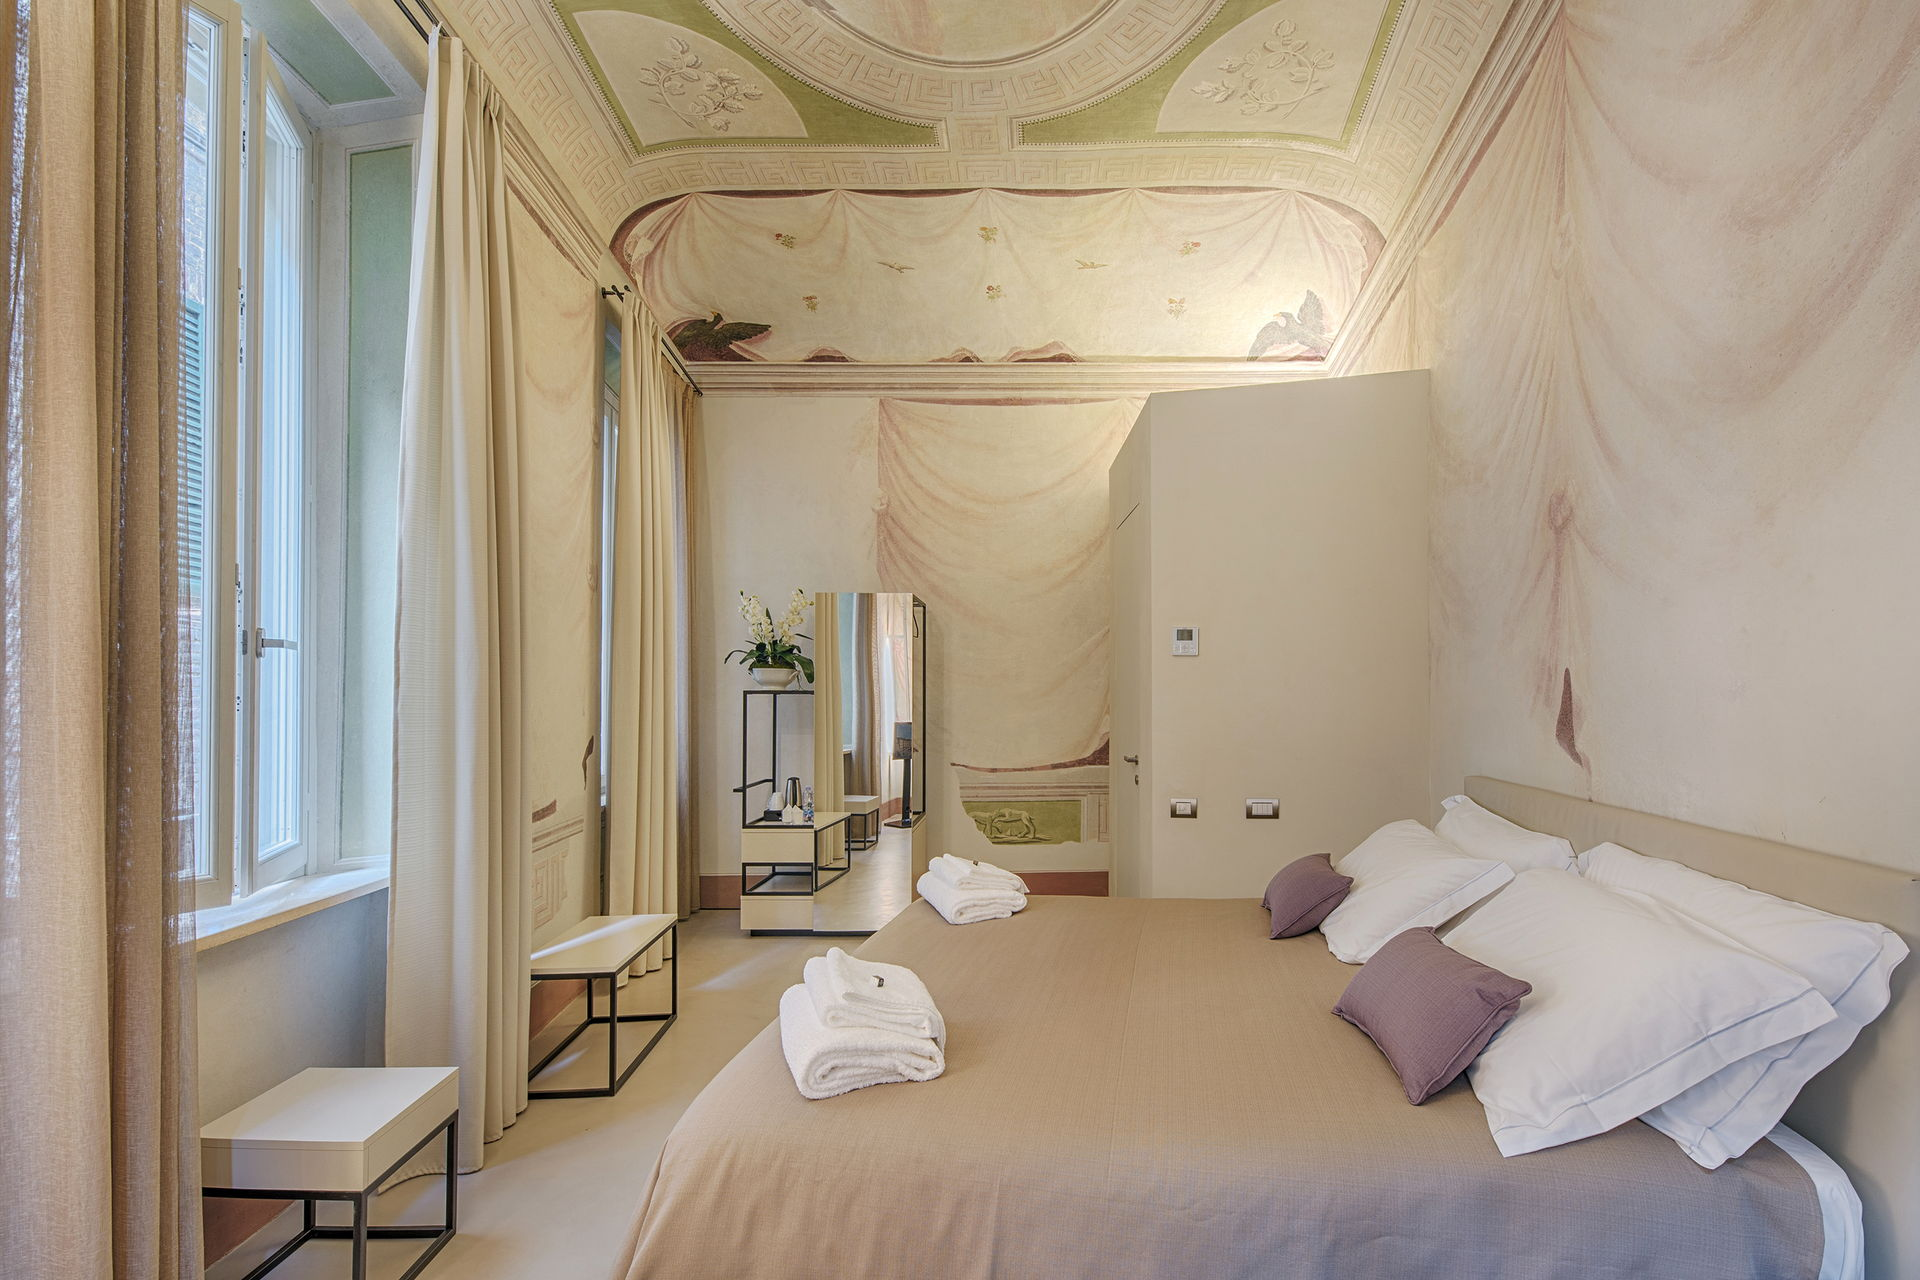 Residenza d'epoca Le Aquile - Bed and Breakfast luxury nel centro di Siena 2